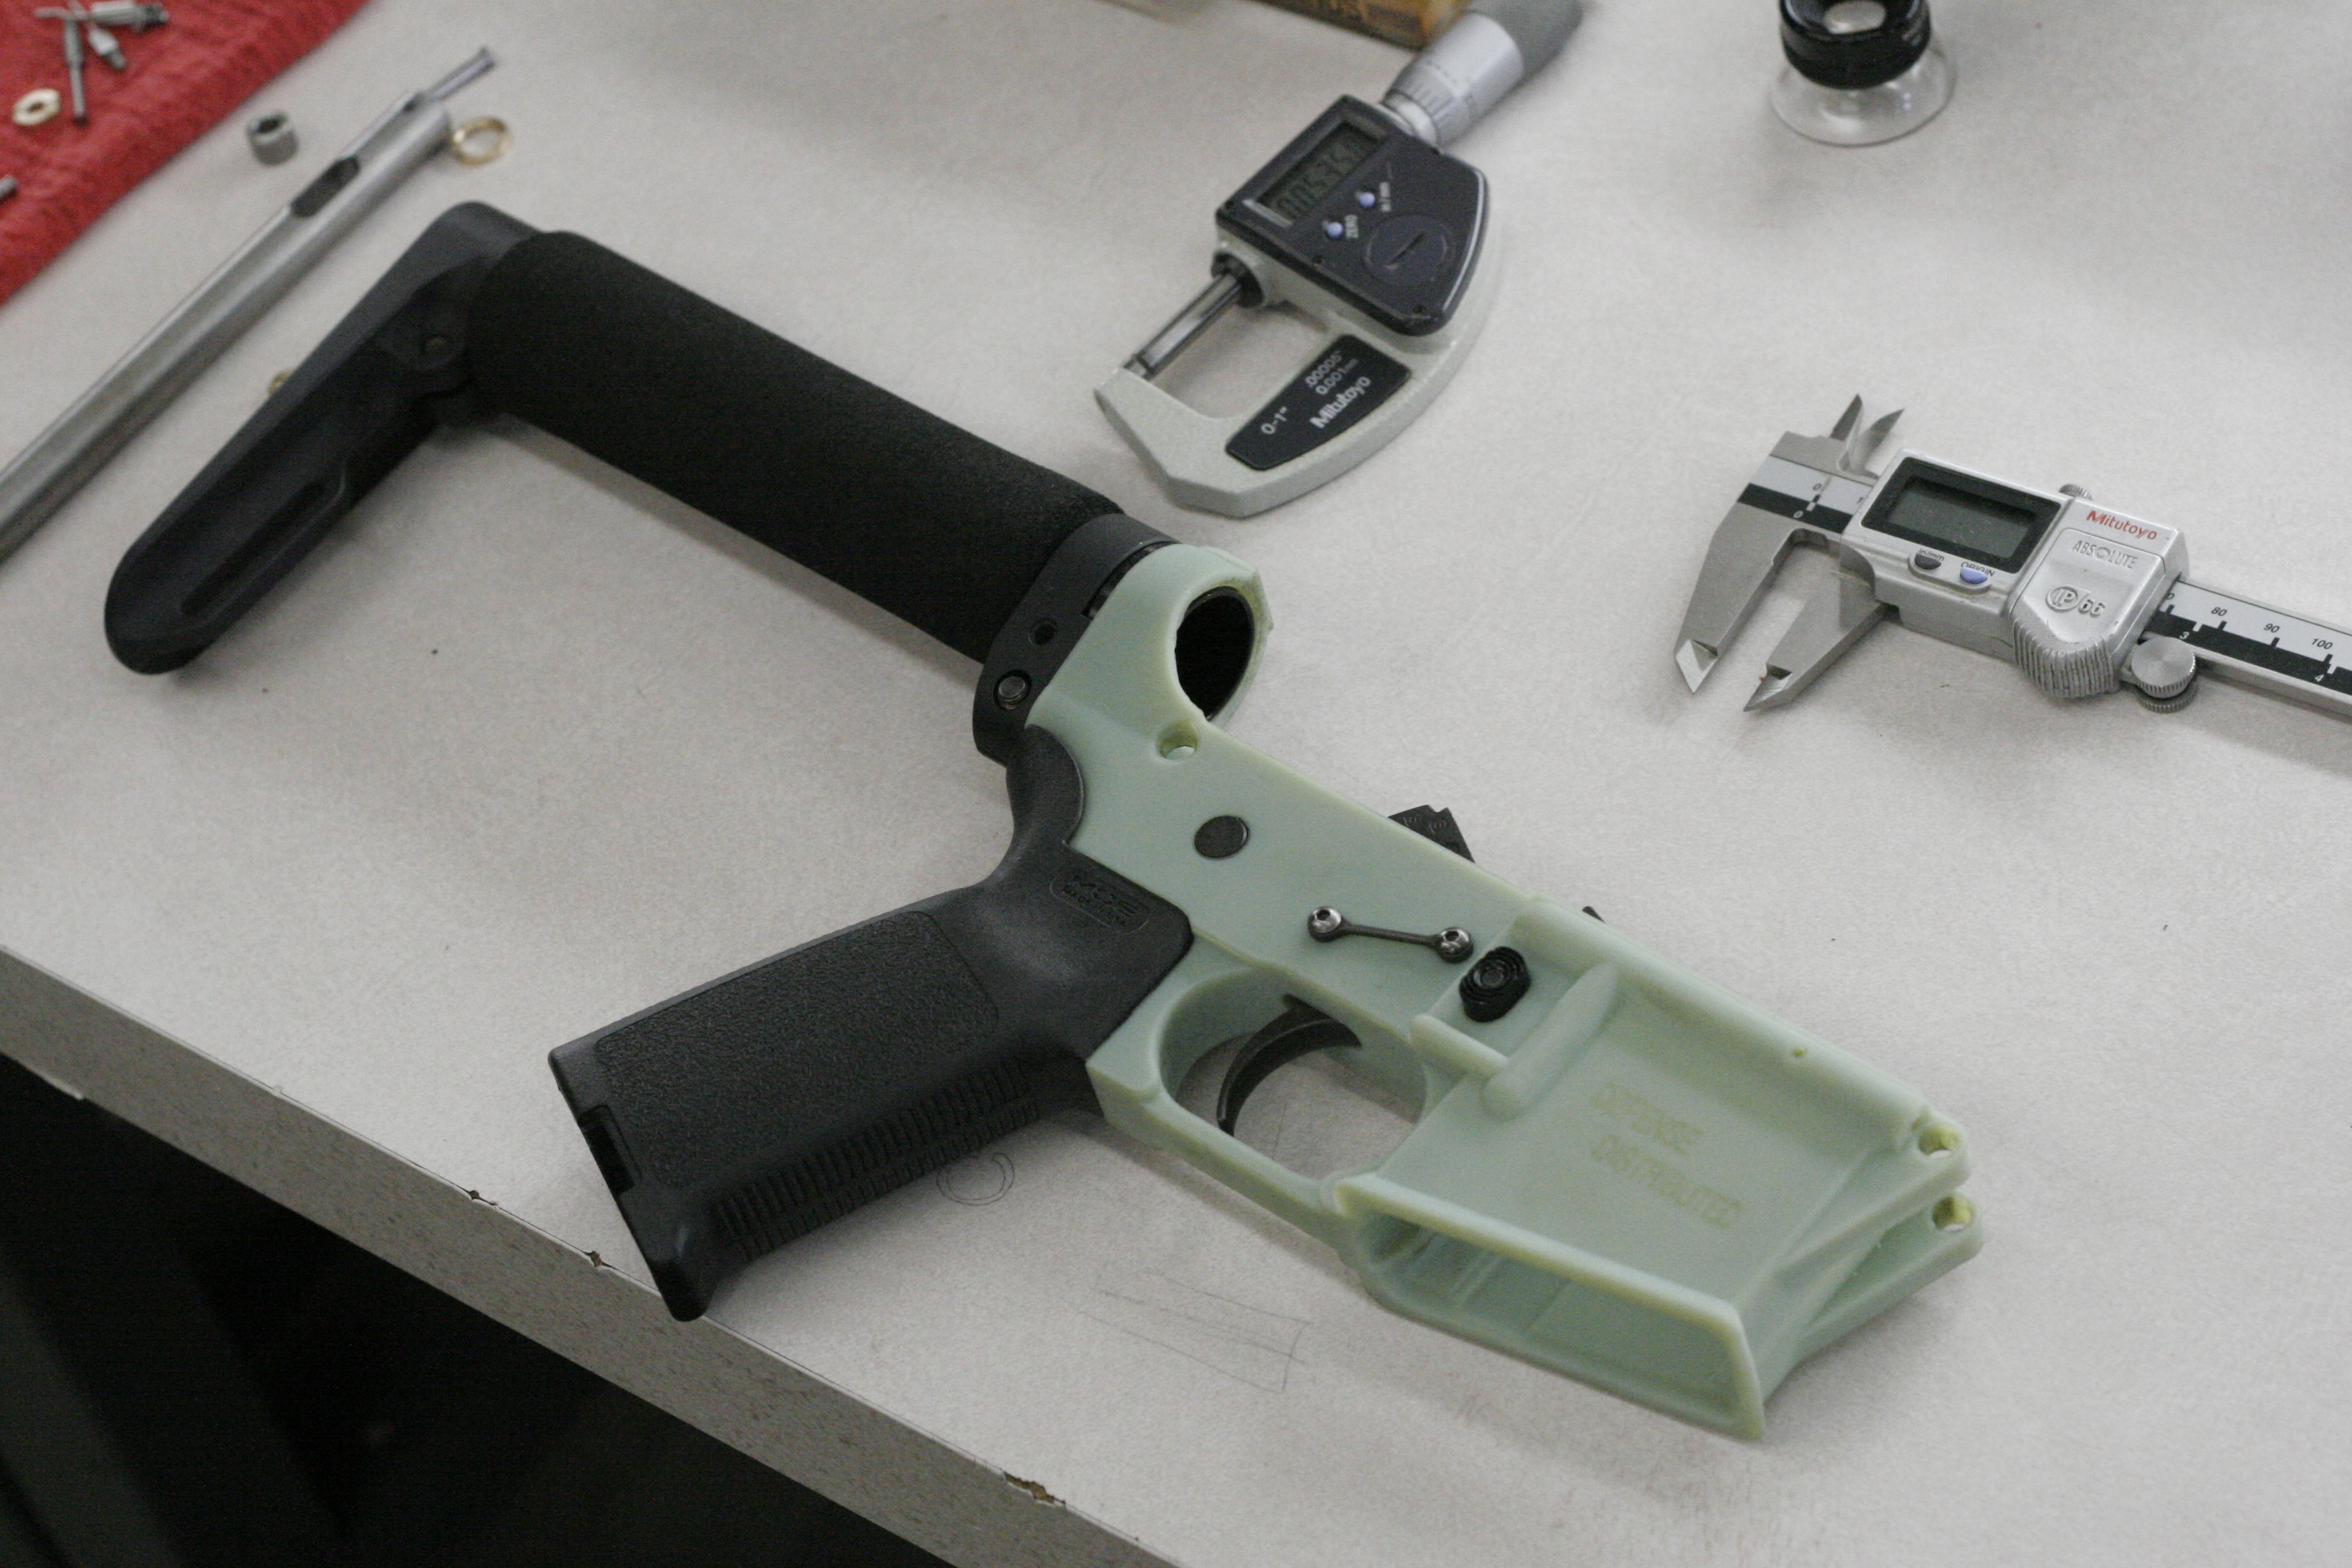 Is 3D Printed Weaponry Still a Potential Threat?